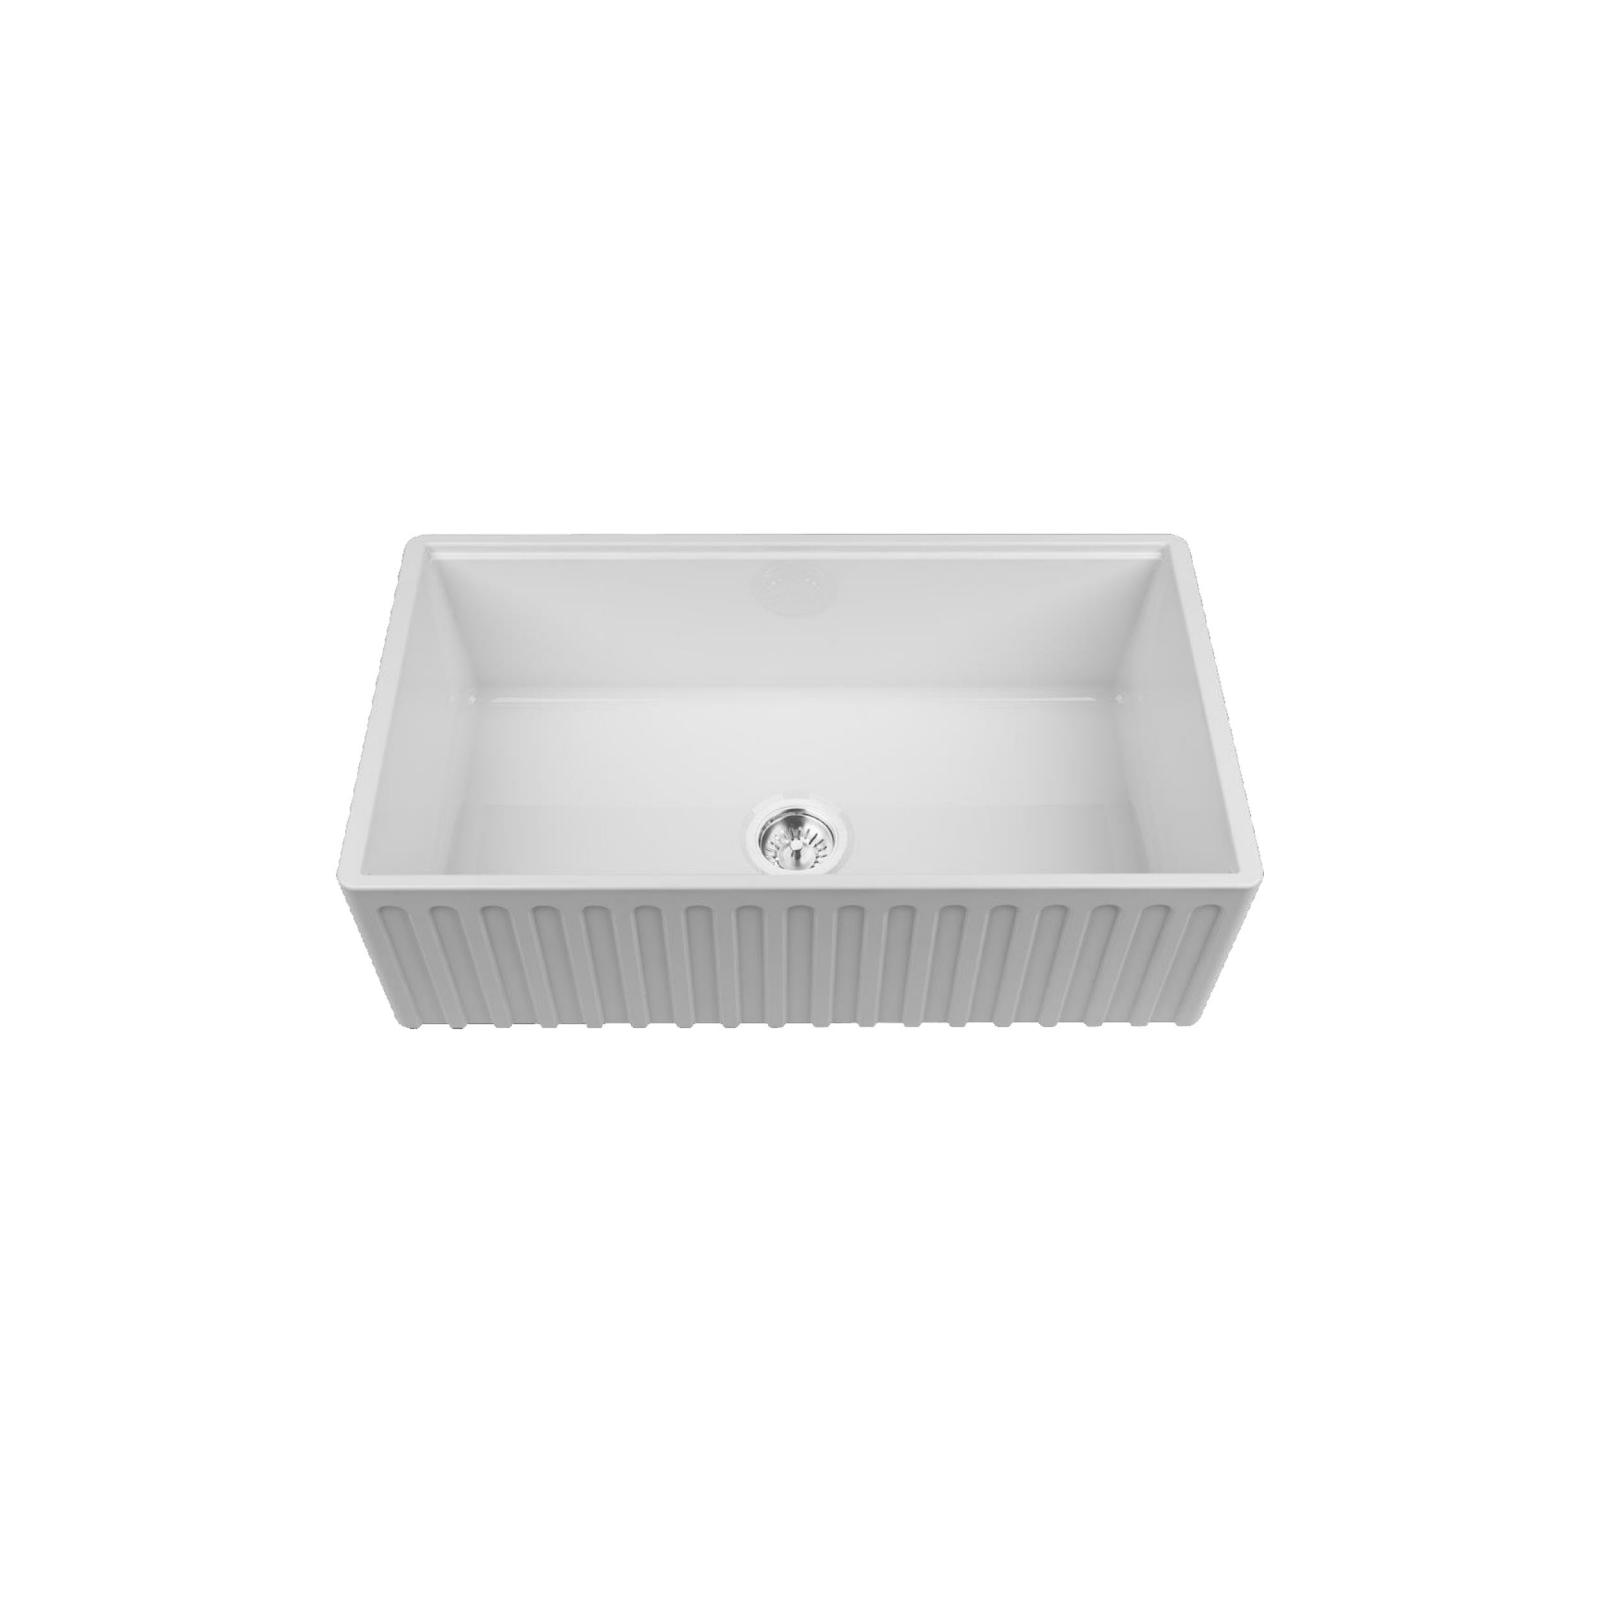 High-quality sink Louis Le Grand III - single bowl, ceramic